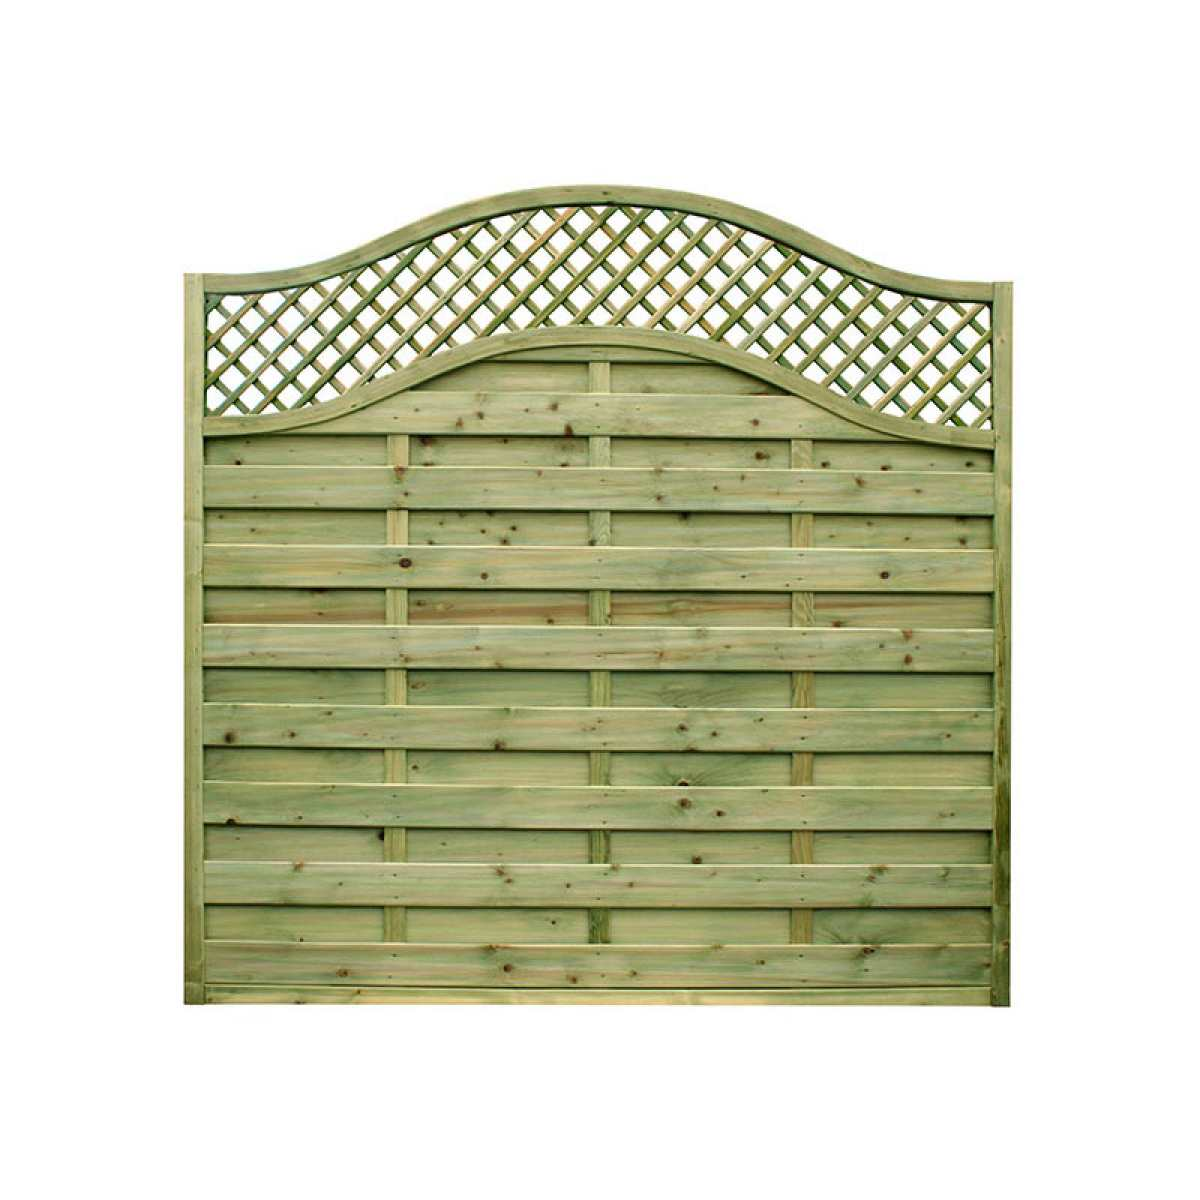 neris 1800x1800mm continental fence Image by Websters Timber